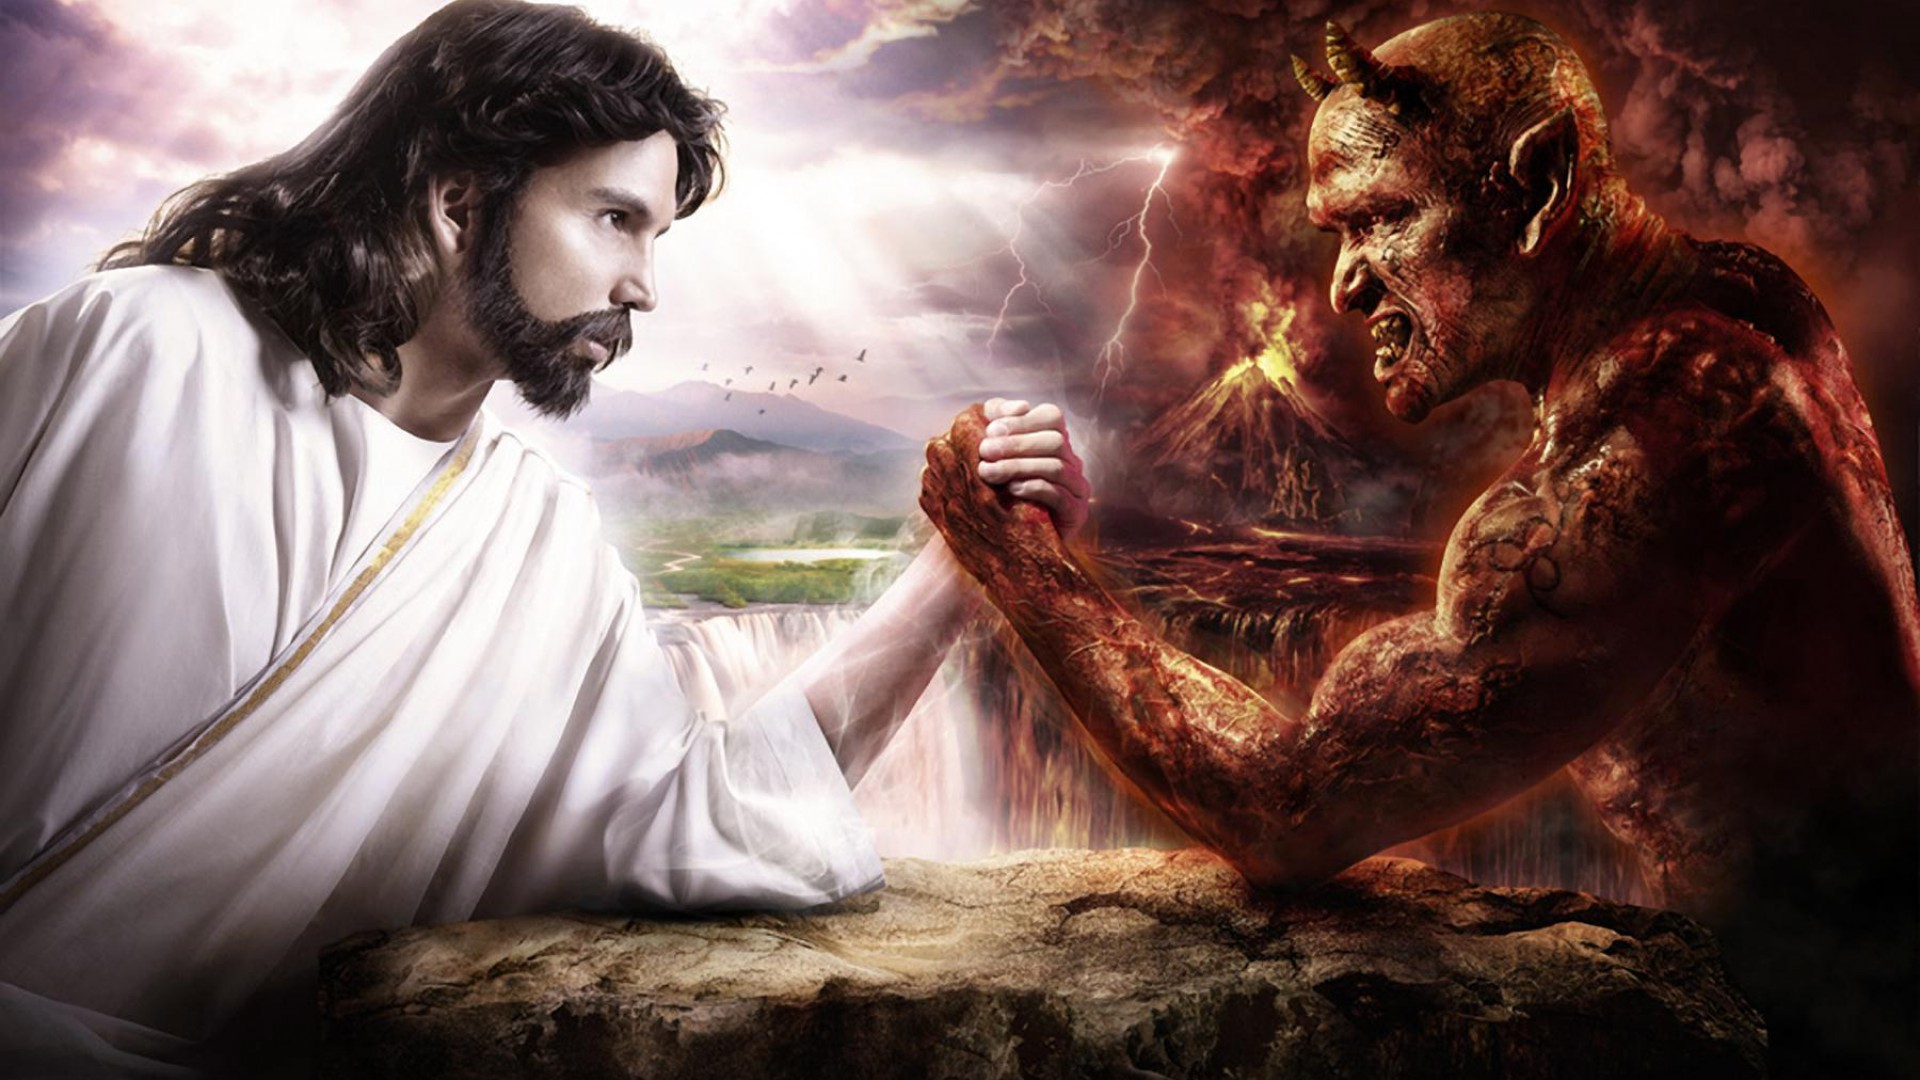 Jesus Vs Satan Wallpaper 55 Images